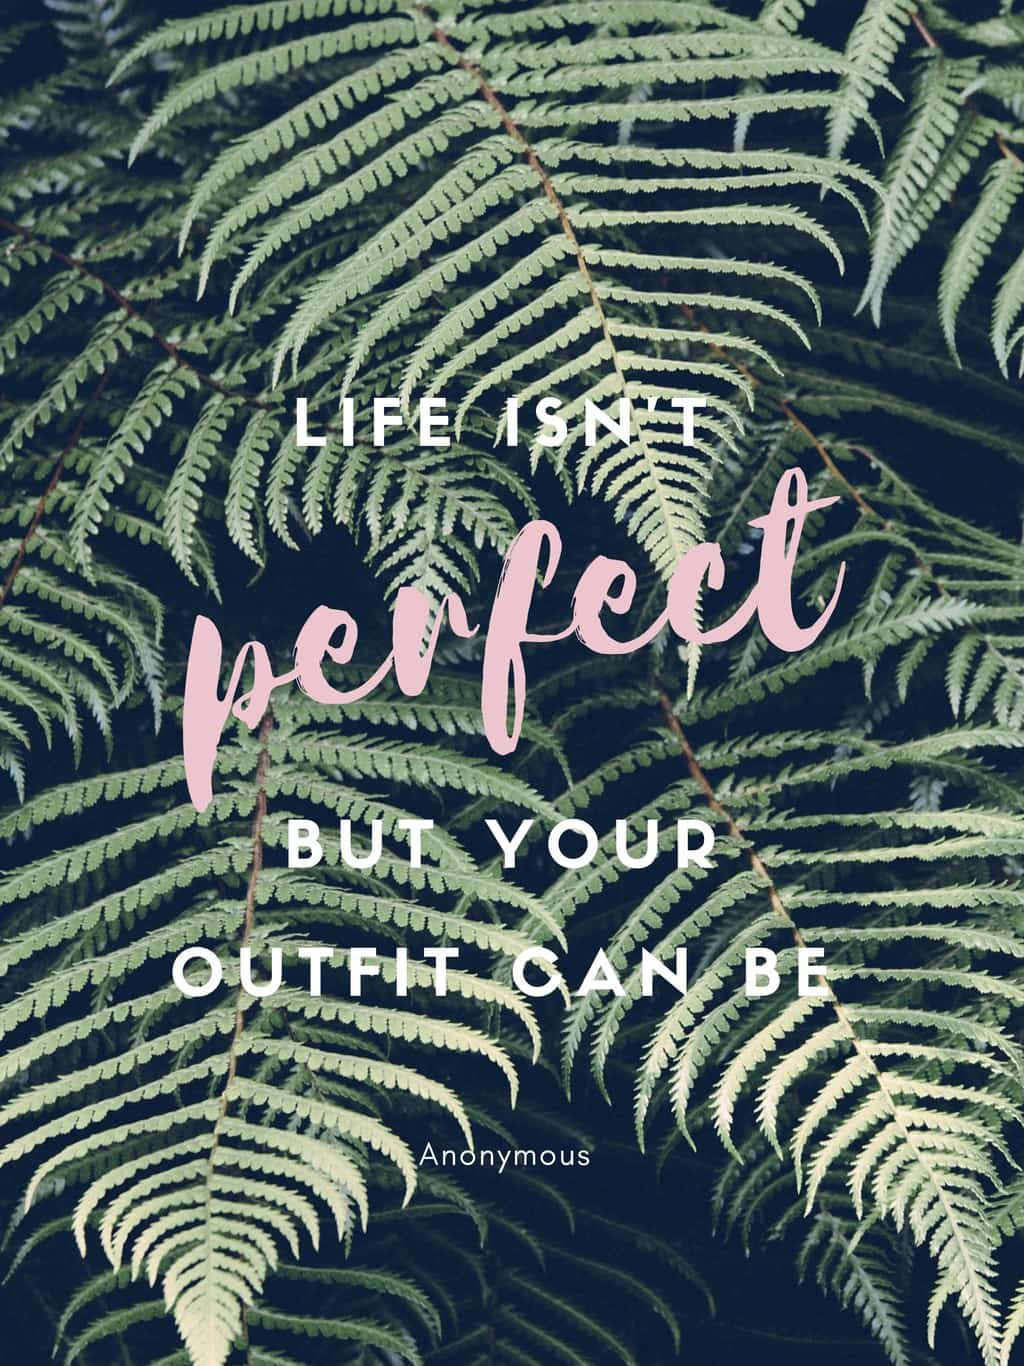 Fashion quotes: Life isn't perfect but your outfit can be